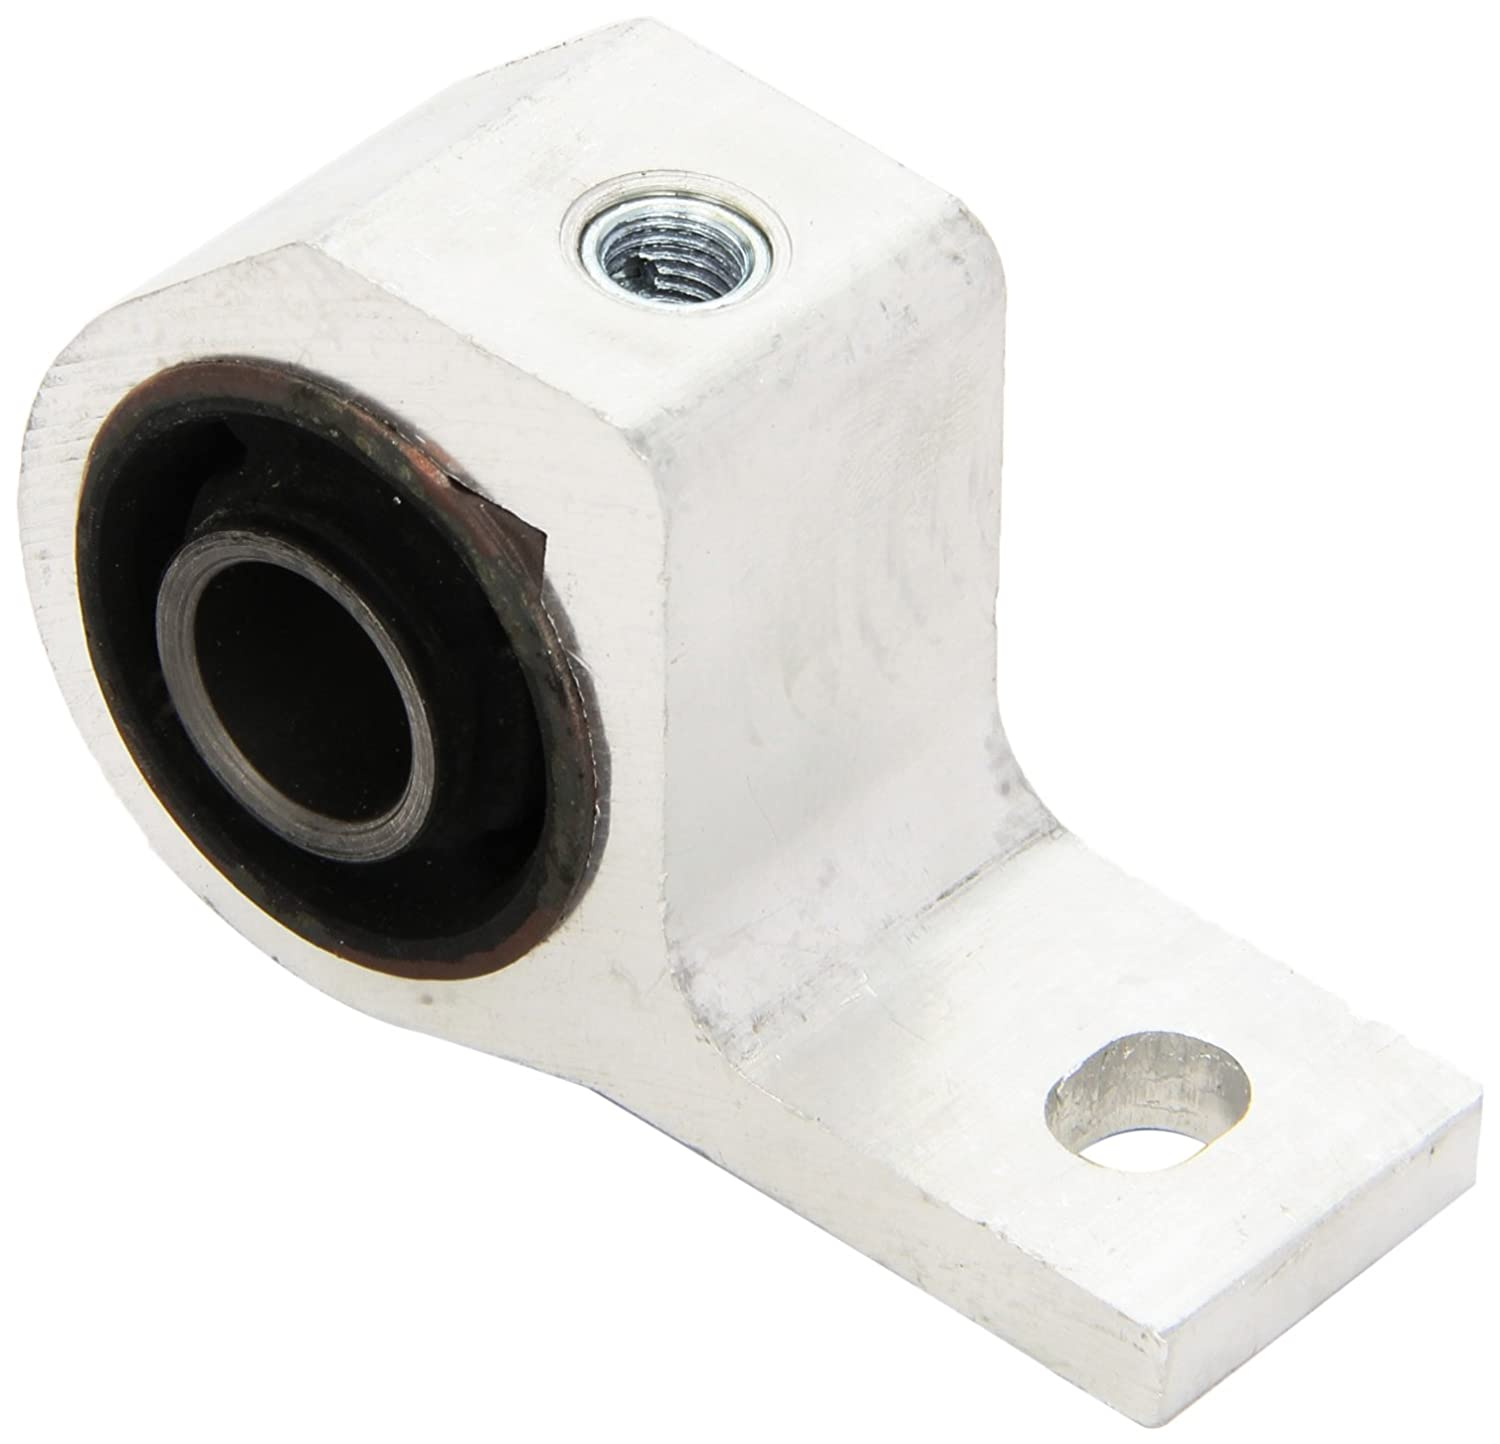 ABS 270670 Mounting Link ABS All Brake Systems bv